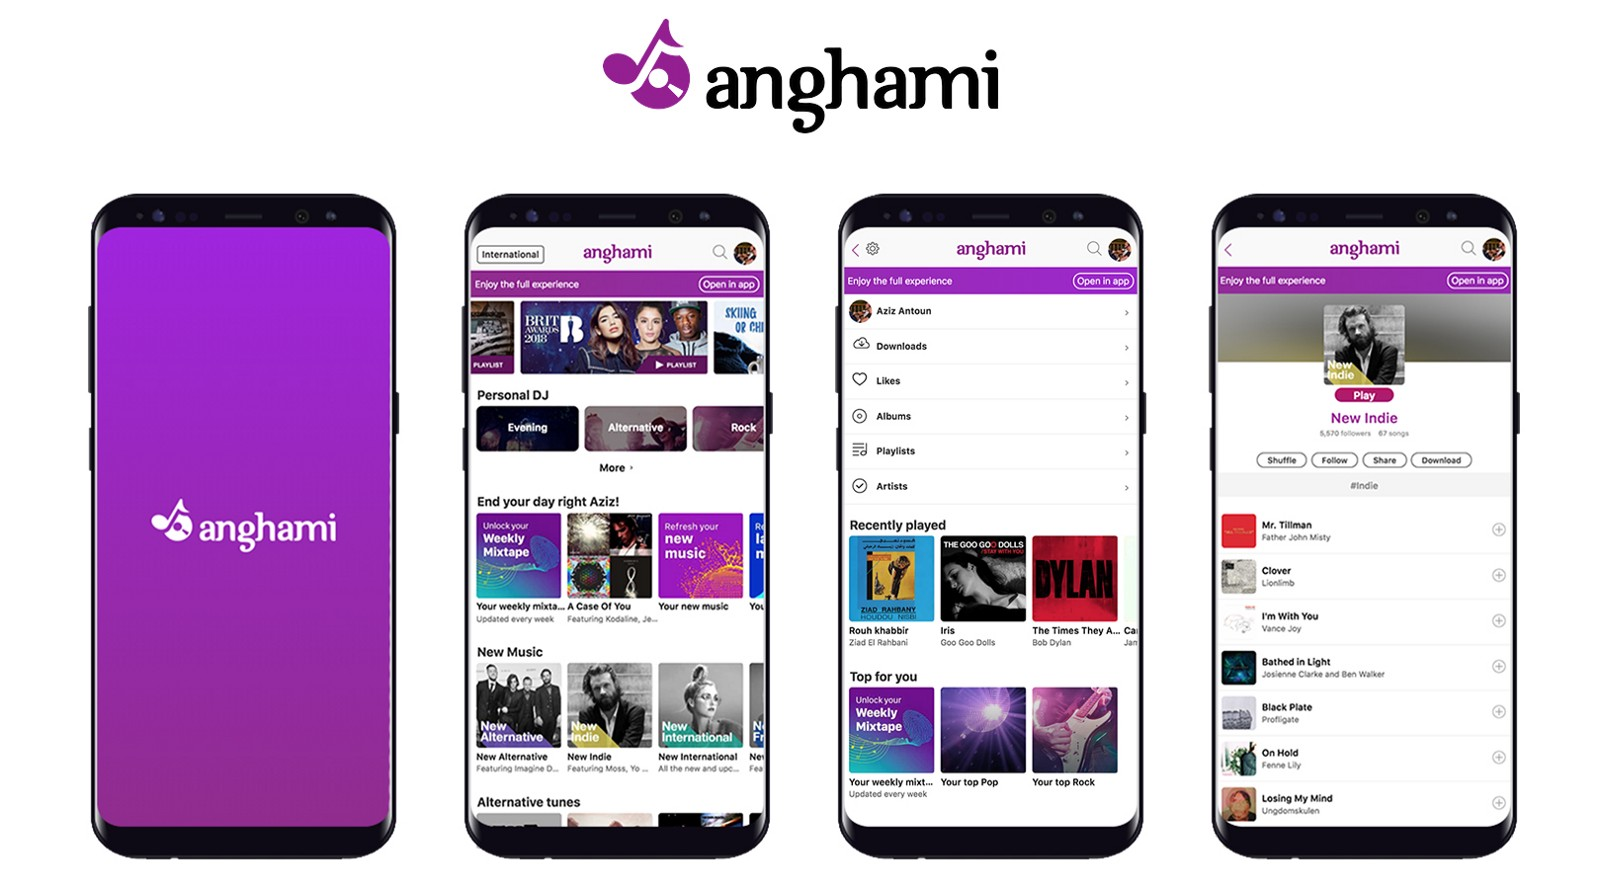 anghami app android